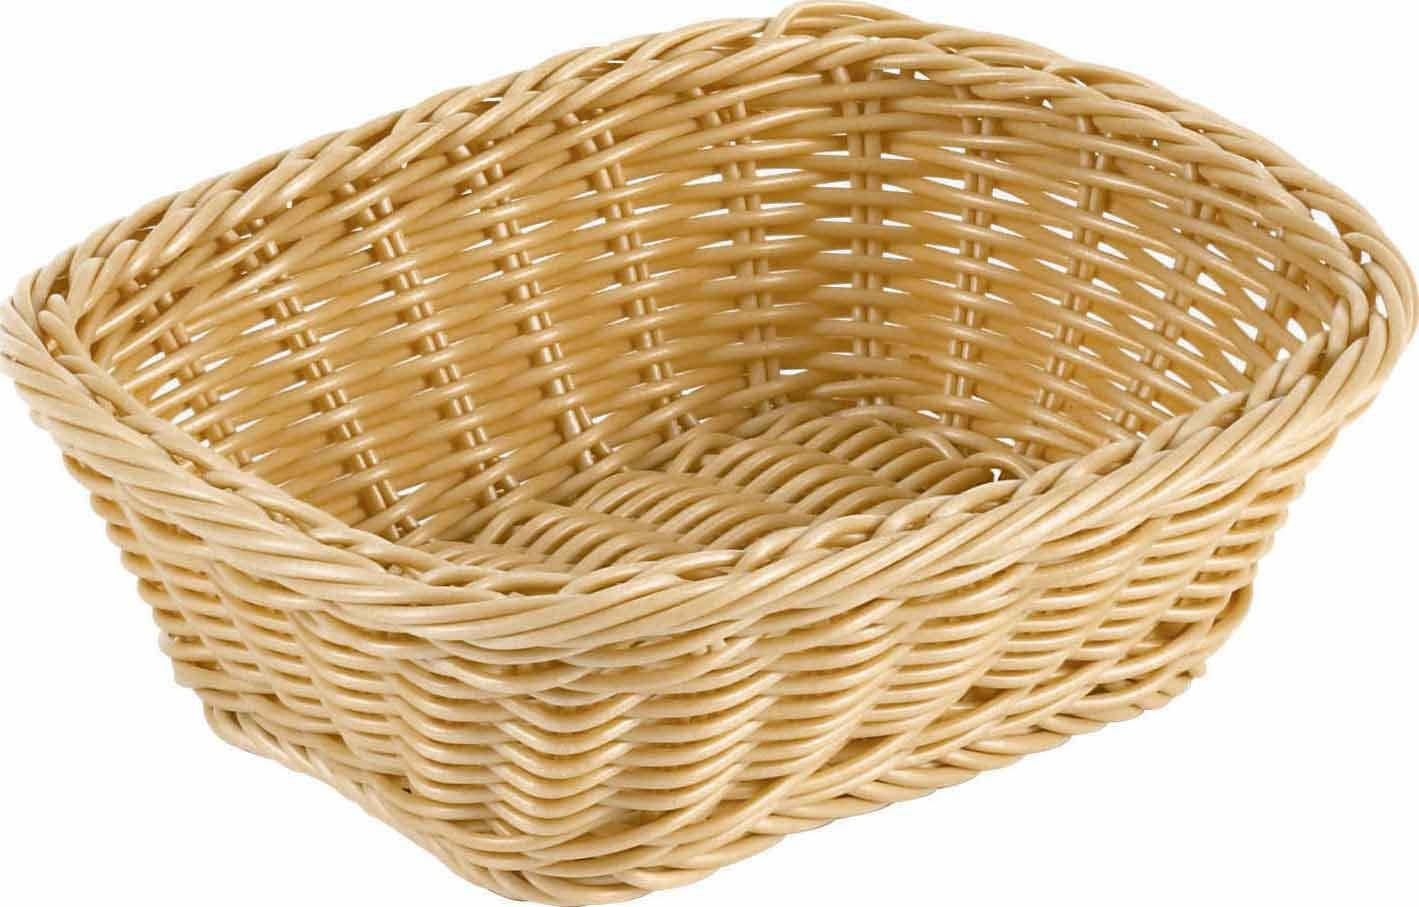 Paderno World Cuisine Rectangular Polyrattan Bread Basket, 16-1/8-Inch by 11-3/8-Inch